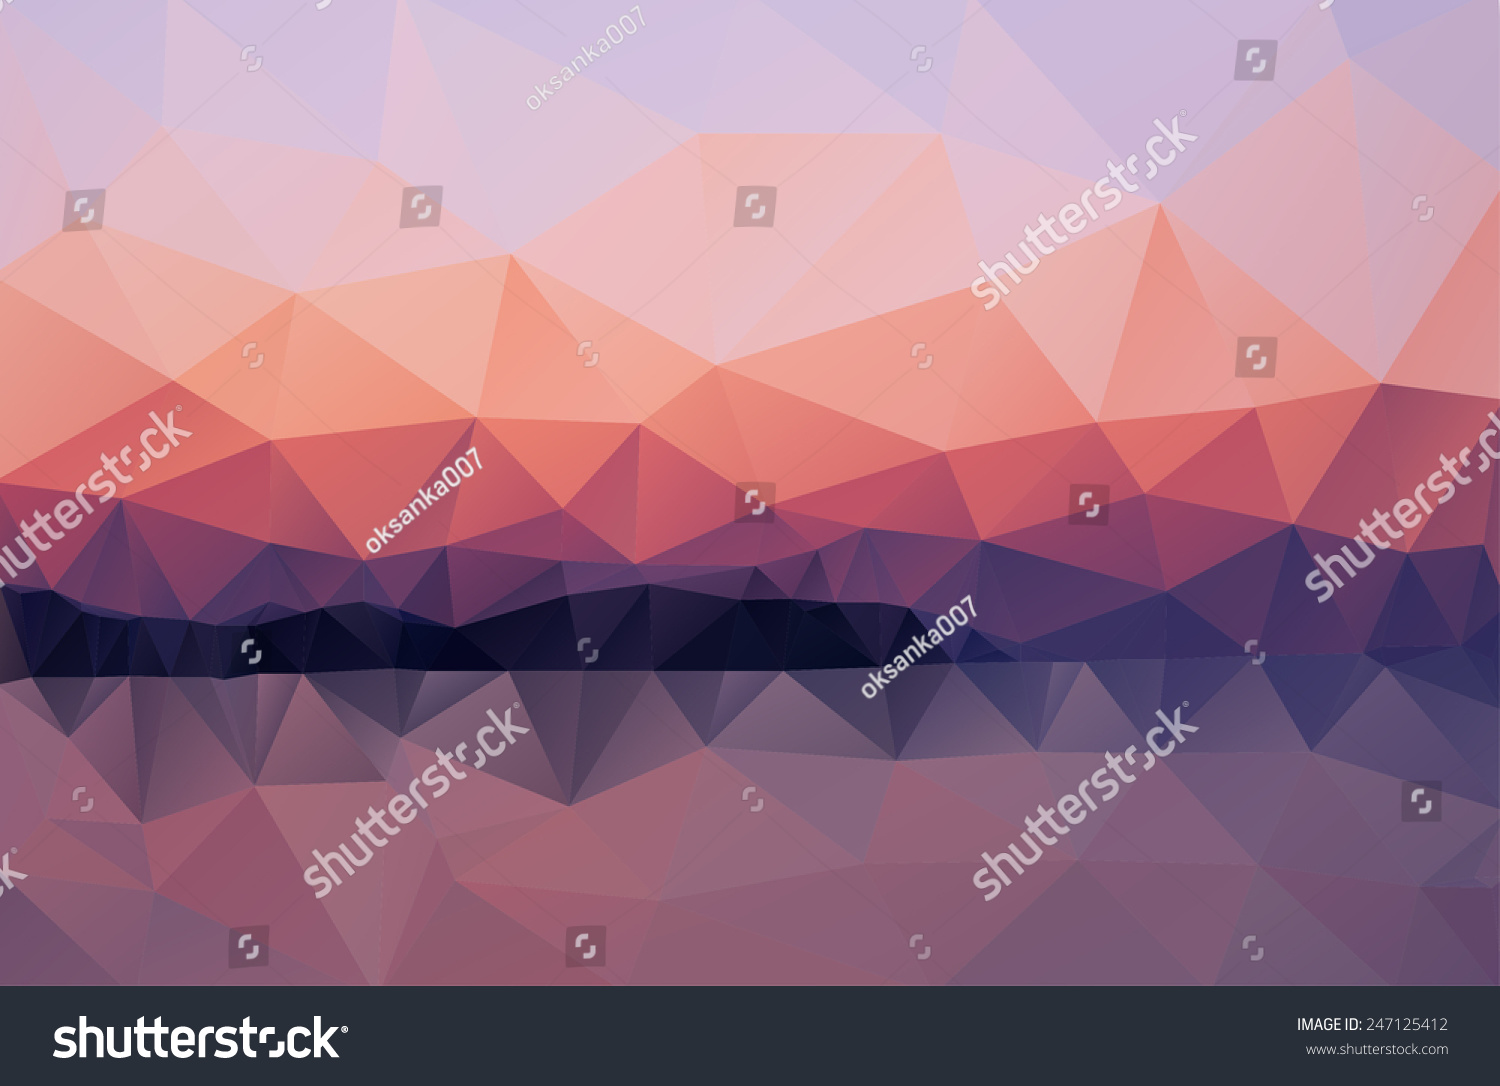 Website soft colors - Triangle Background Vector Polygon Art Soft